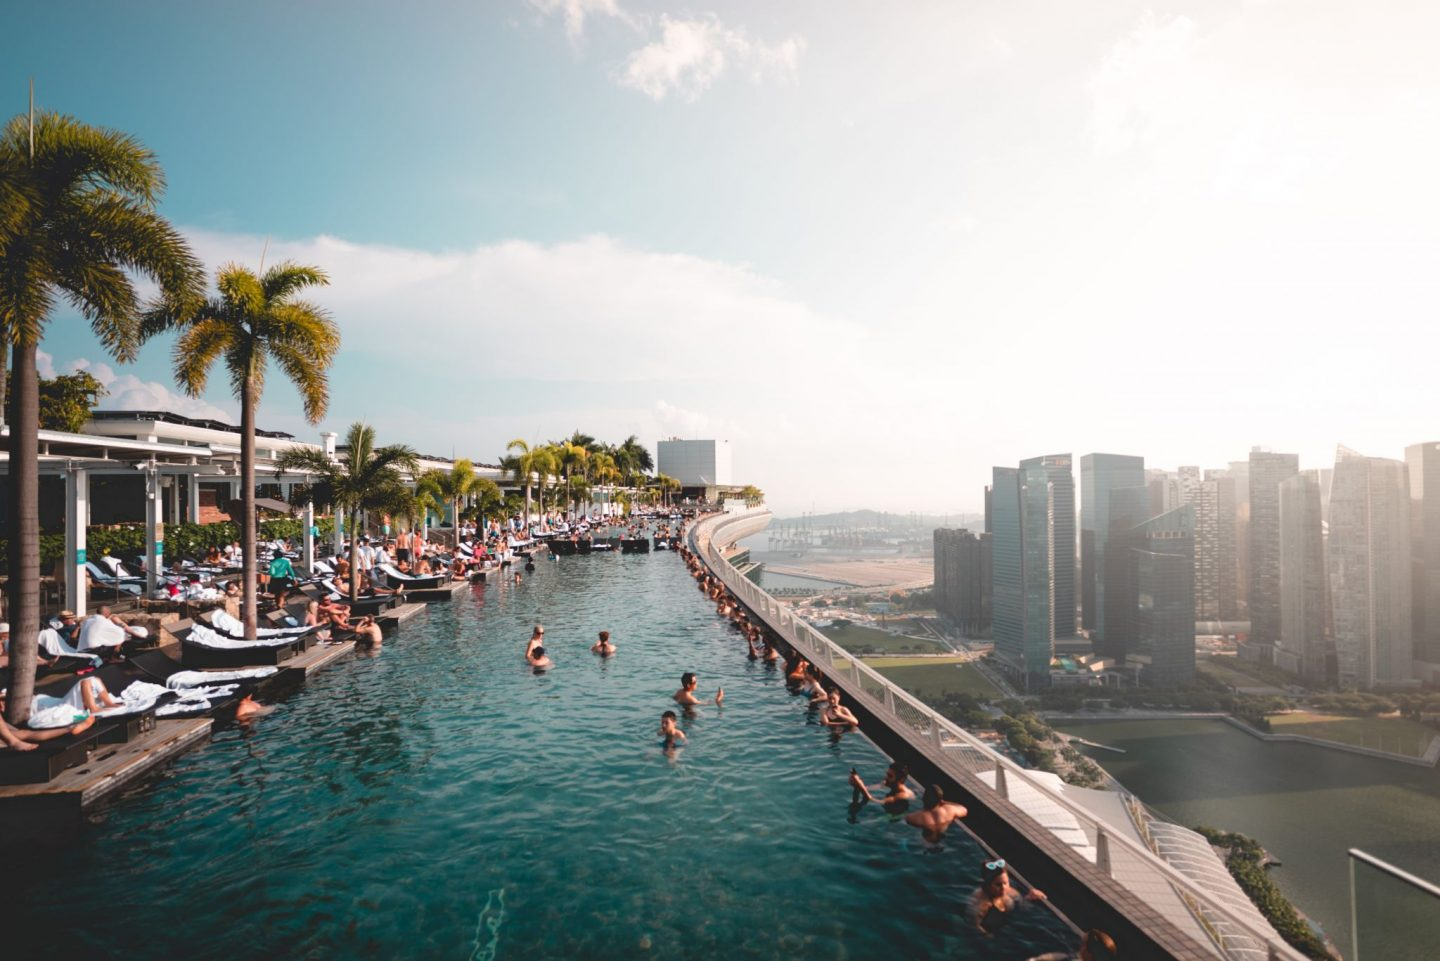 Travel wish list: Marina Bay Sands, Singapore